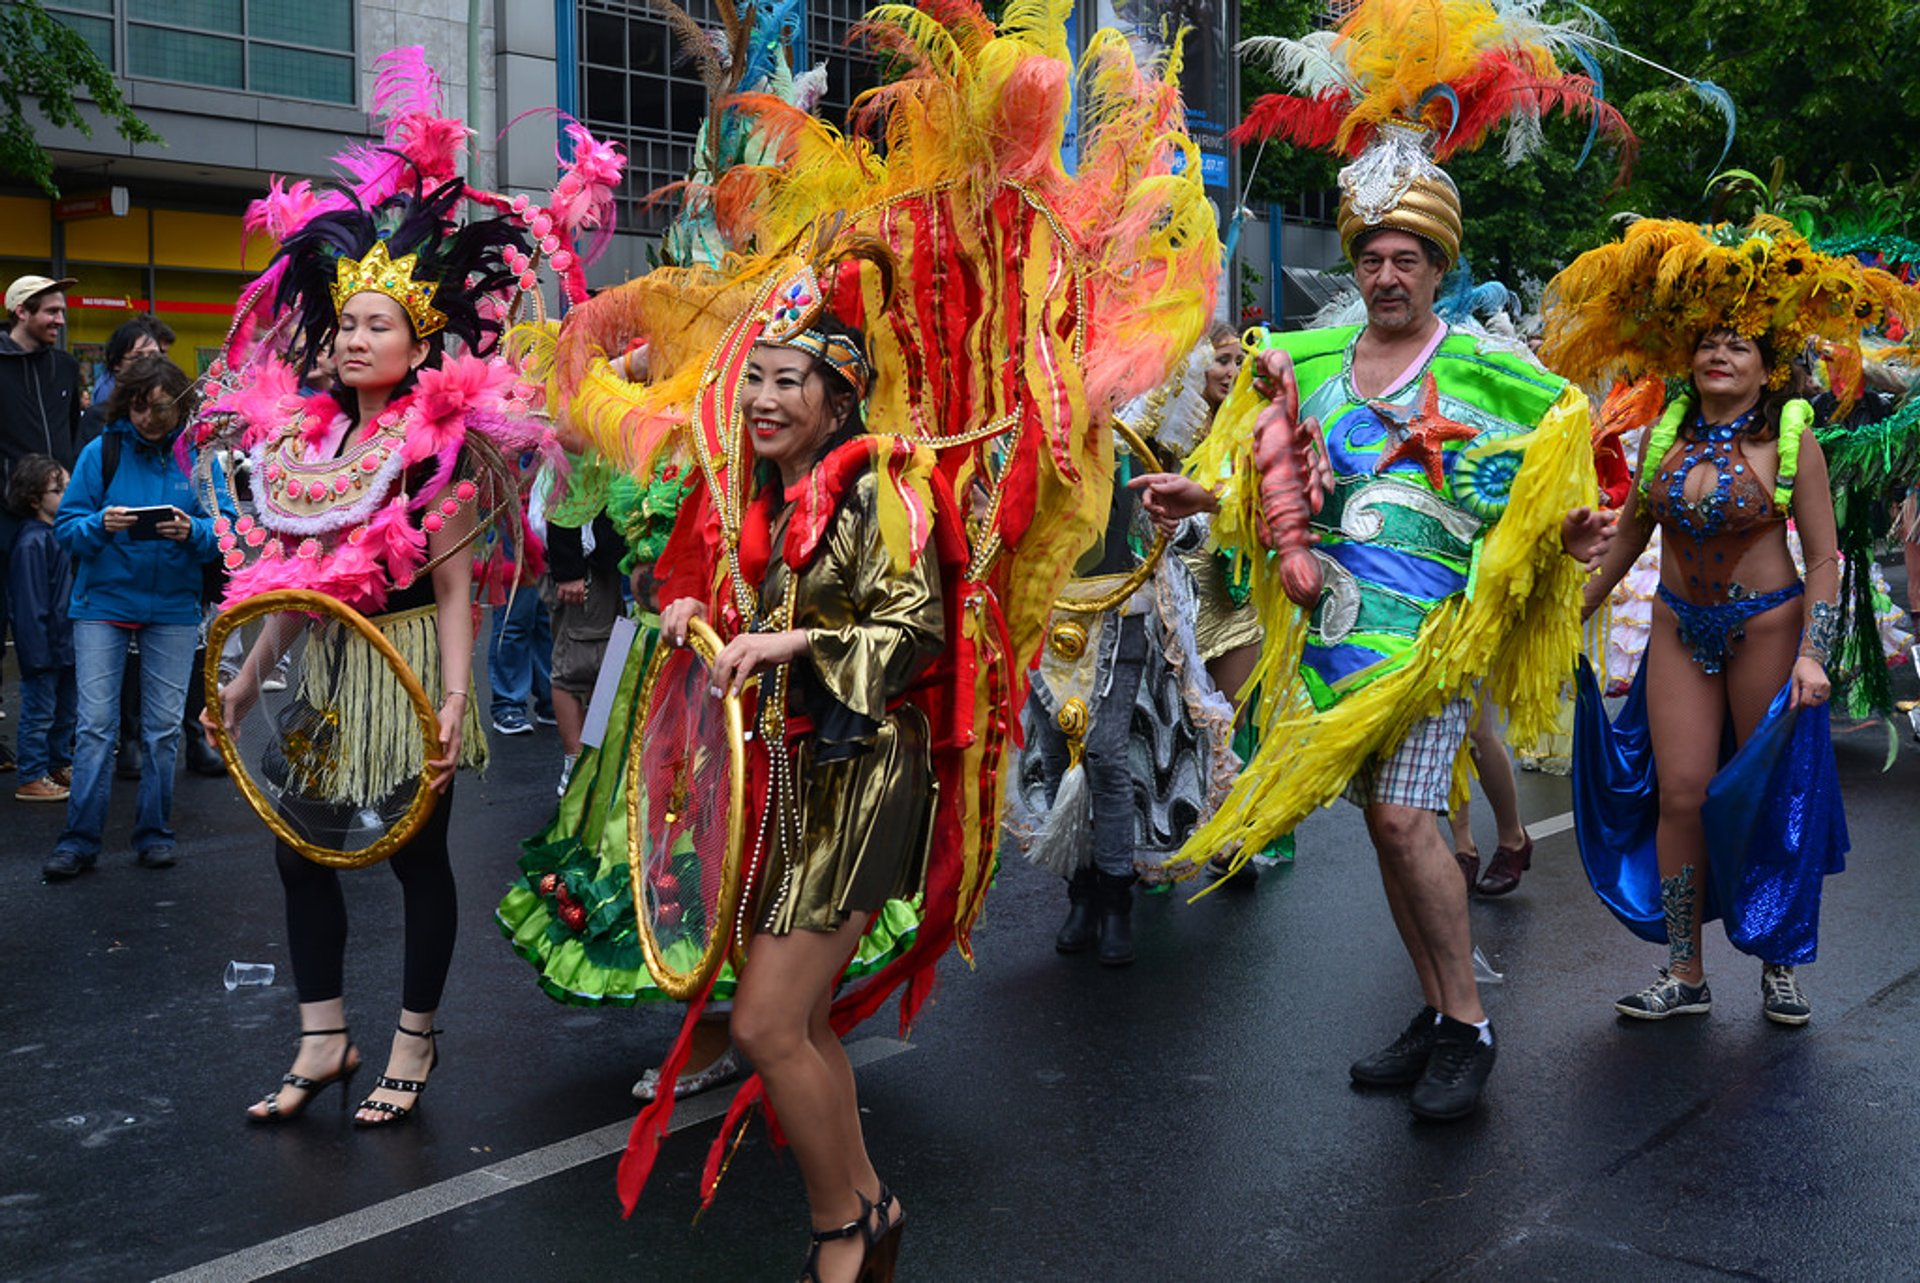 Best time to see Carnival of Cultures 2019